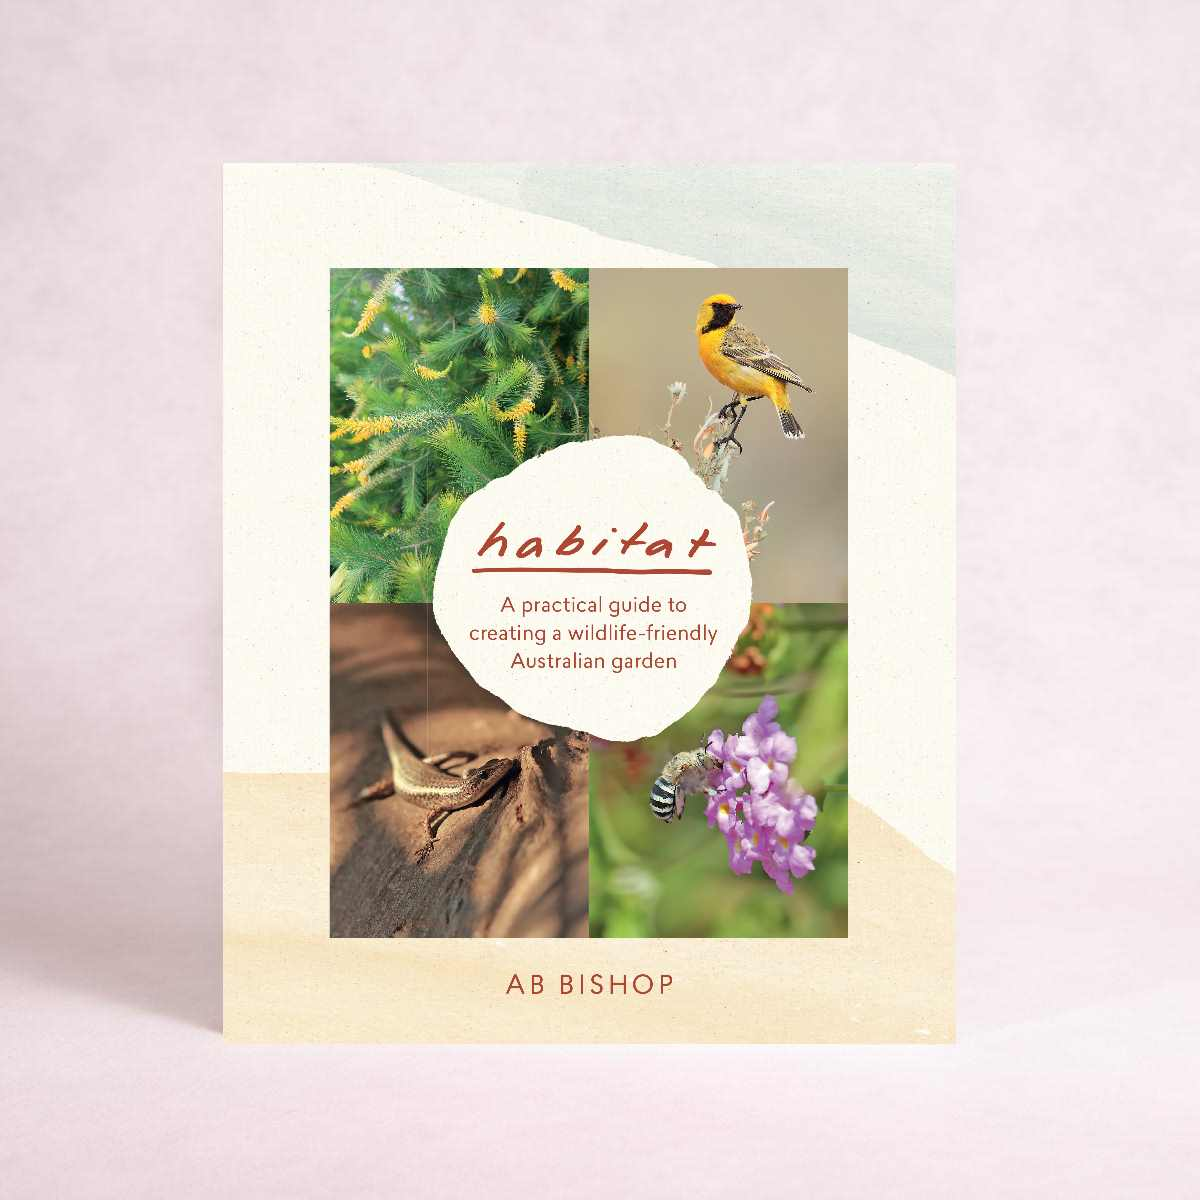 Habitat | By AB Bishop - Book - Throw Some Seeds - Australian gardening gifts and eco products online!